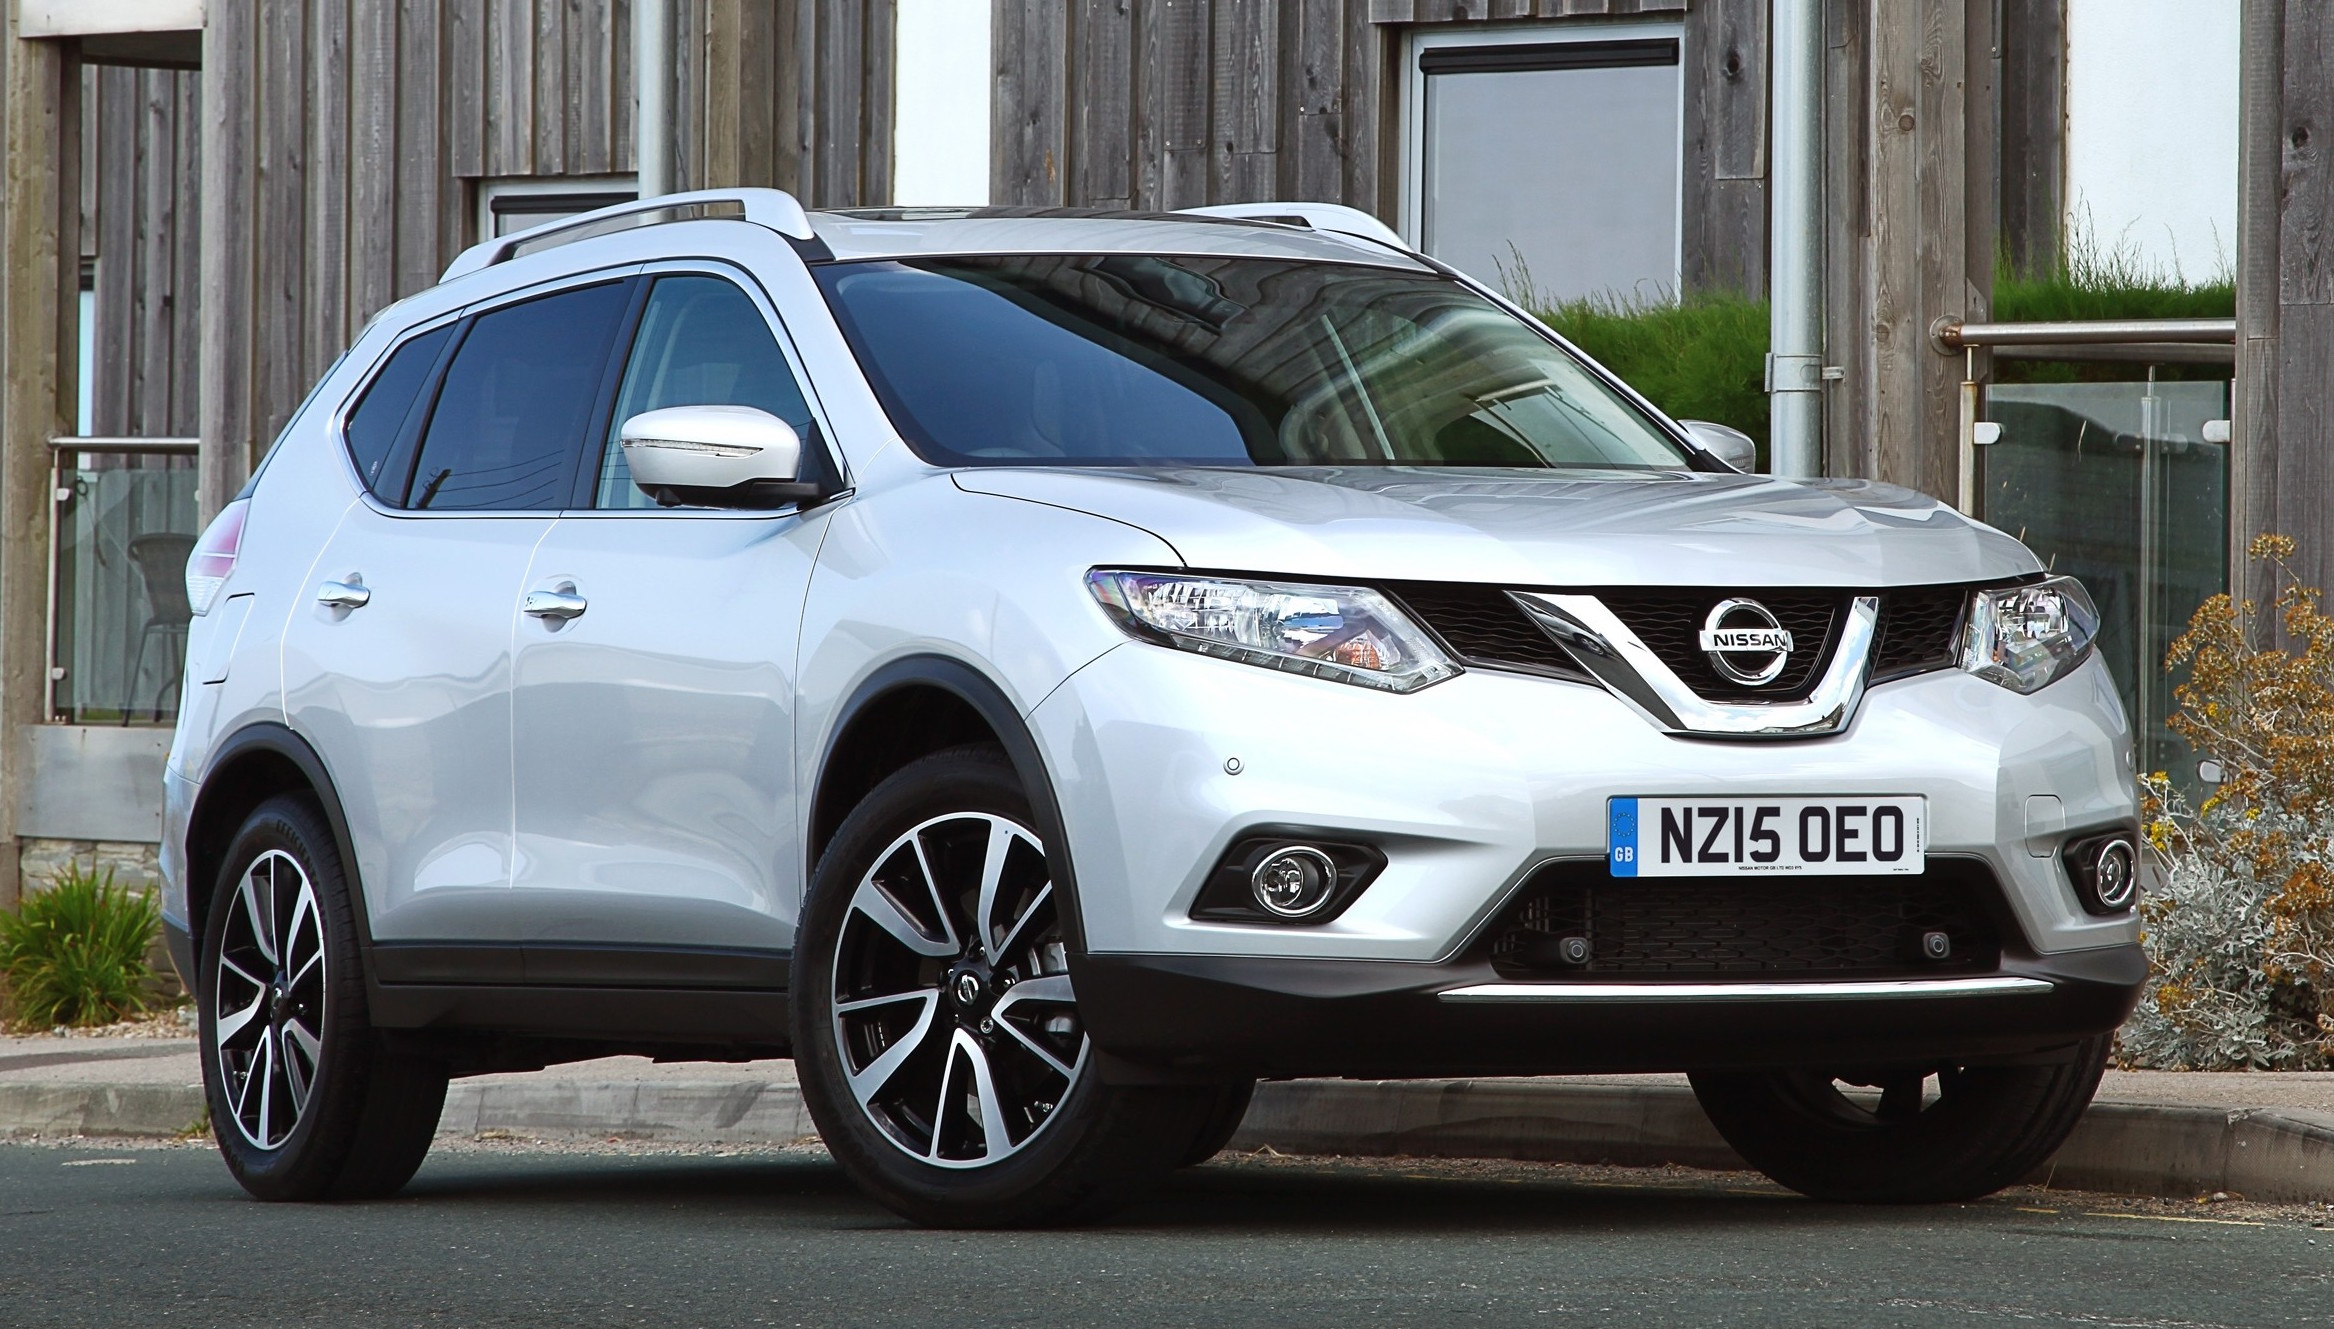 Nissan X Trail 2016 >> Nissan X-Trail gets new 1.6 turbo engine in the UK Image 359509